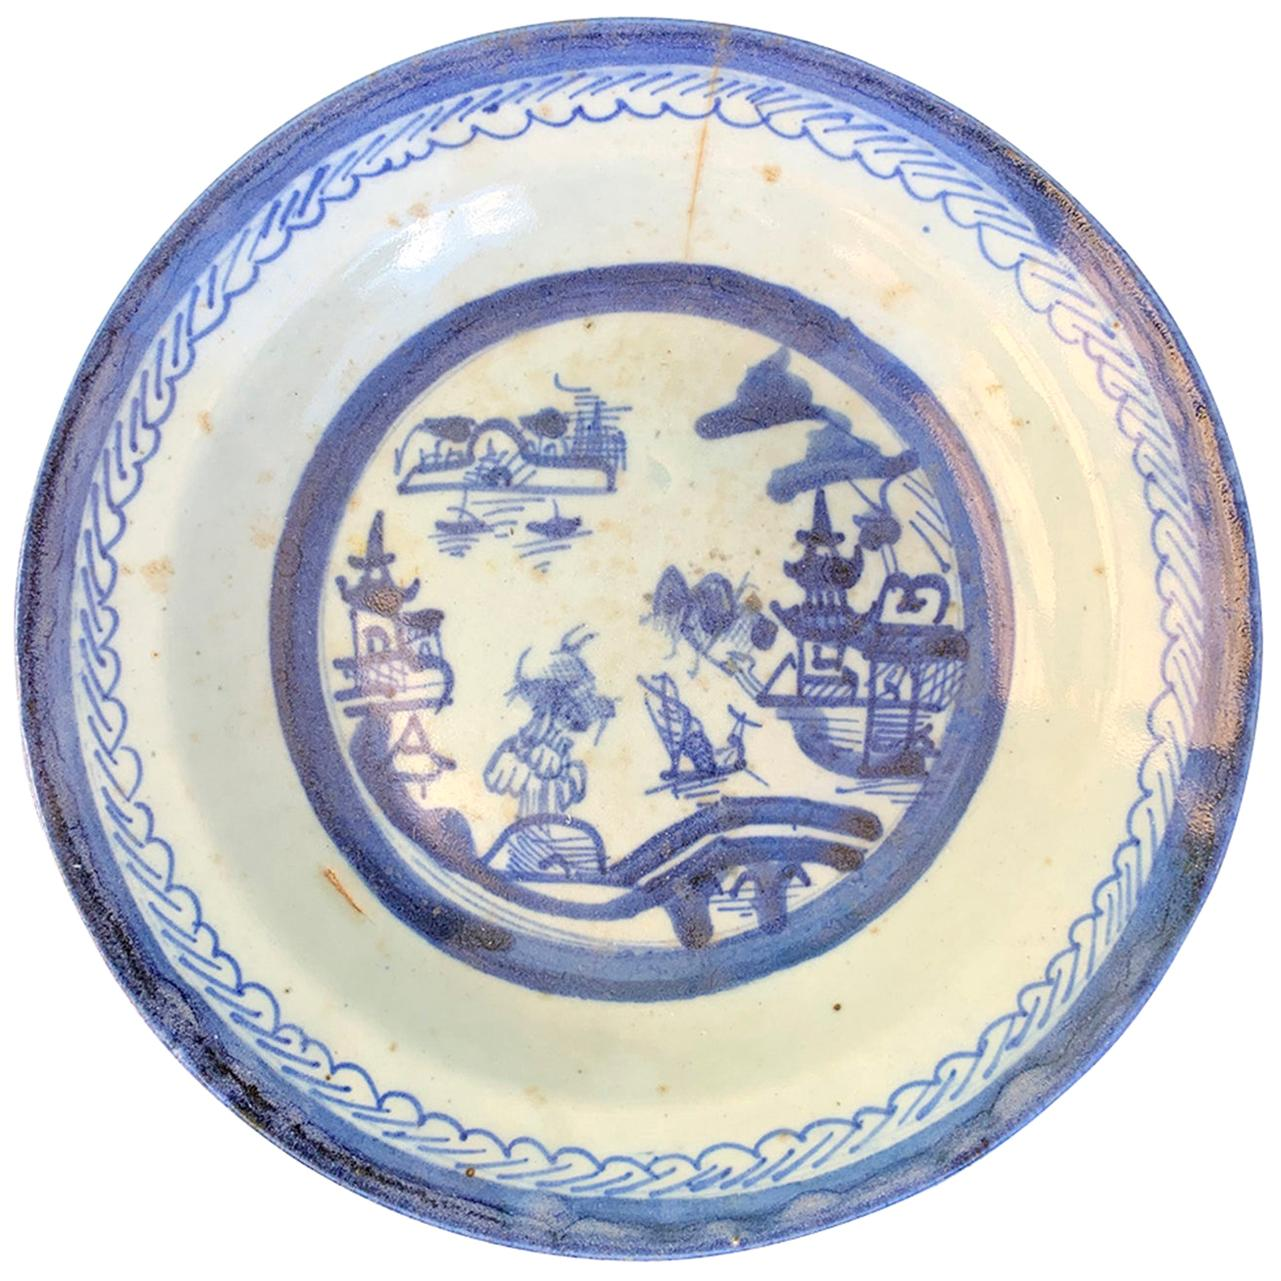 19th Century Chinese Export Canton Ware Blue & White Porcelain Plate, Unmarked